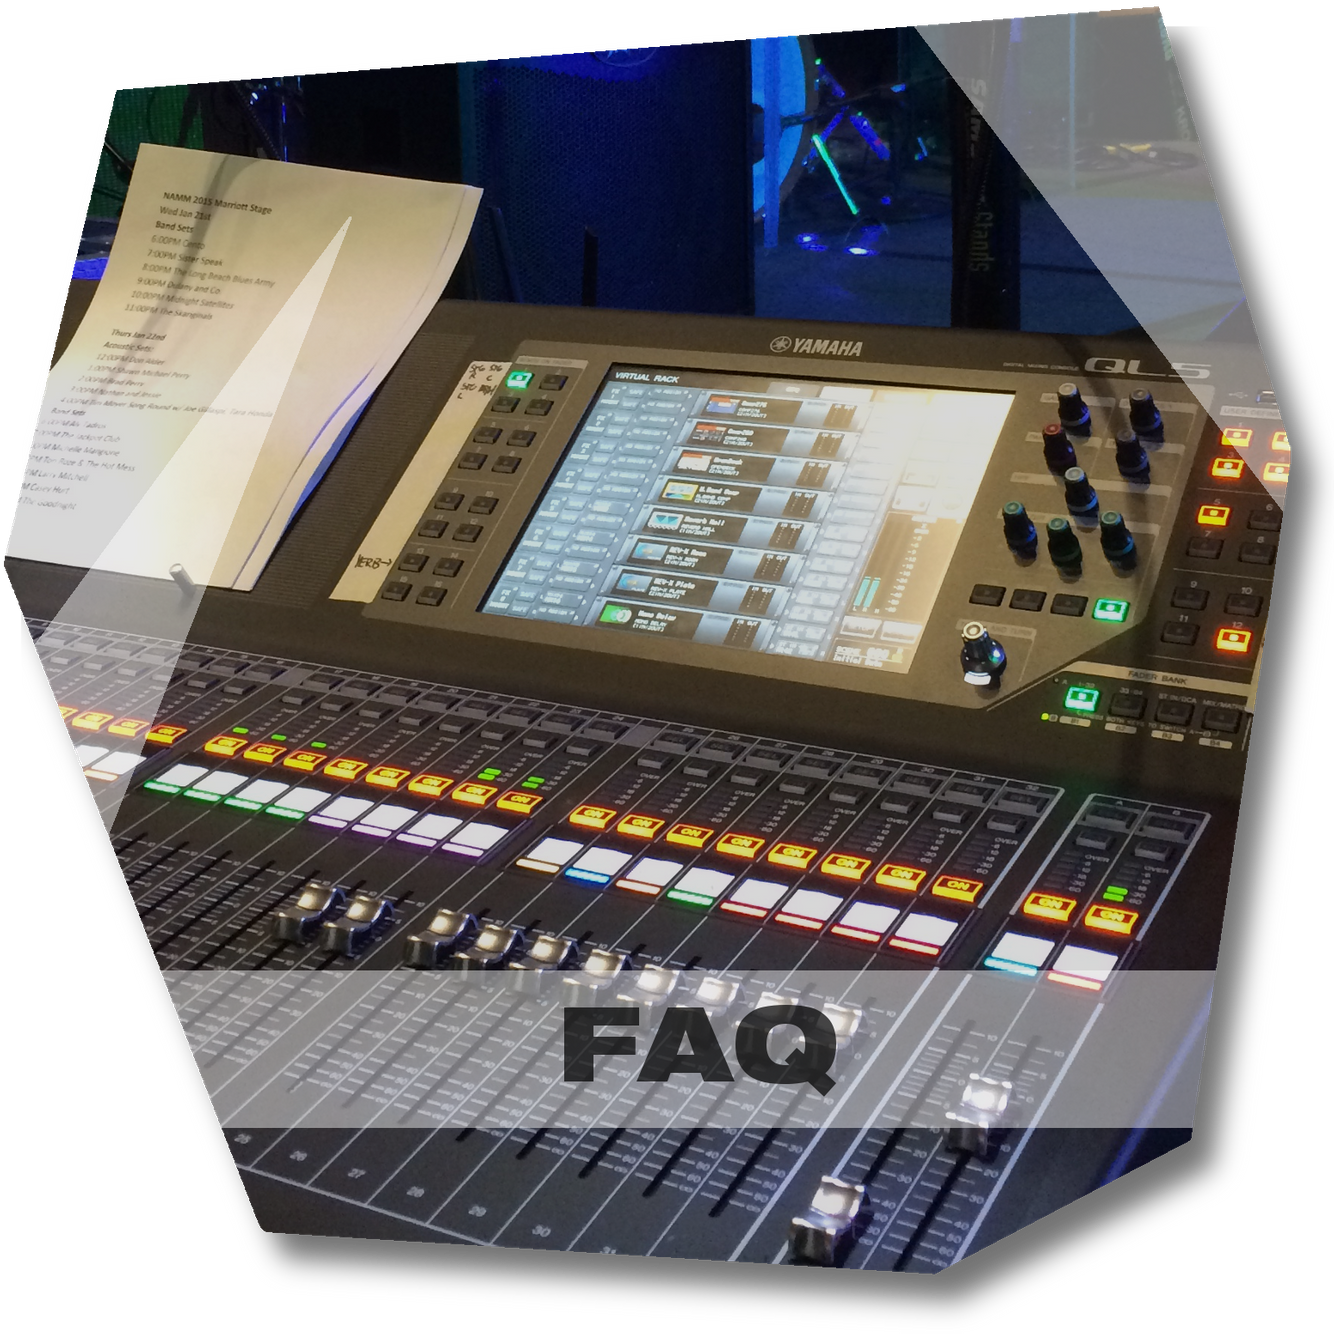 Hollywood Sound Systems - FAQ